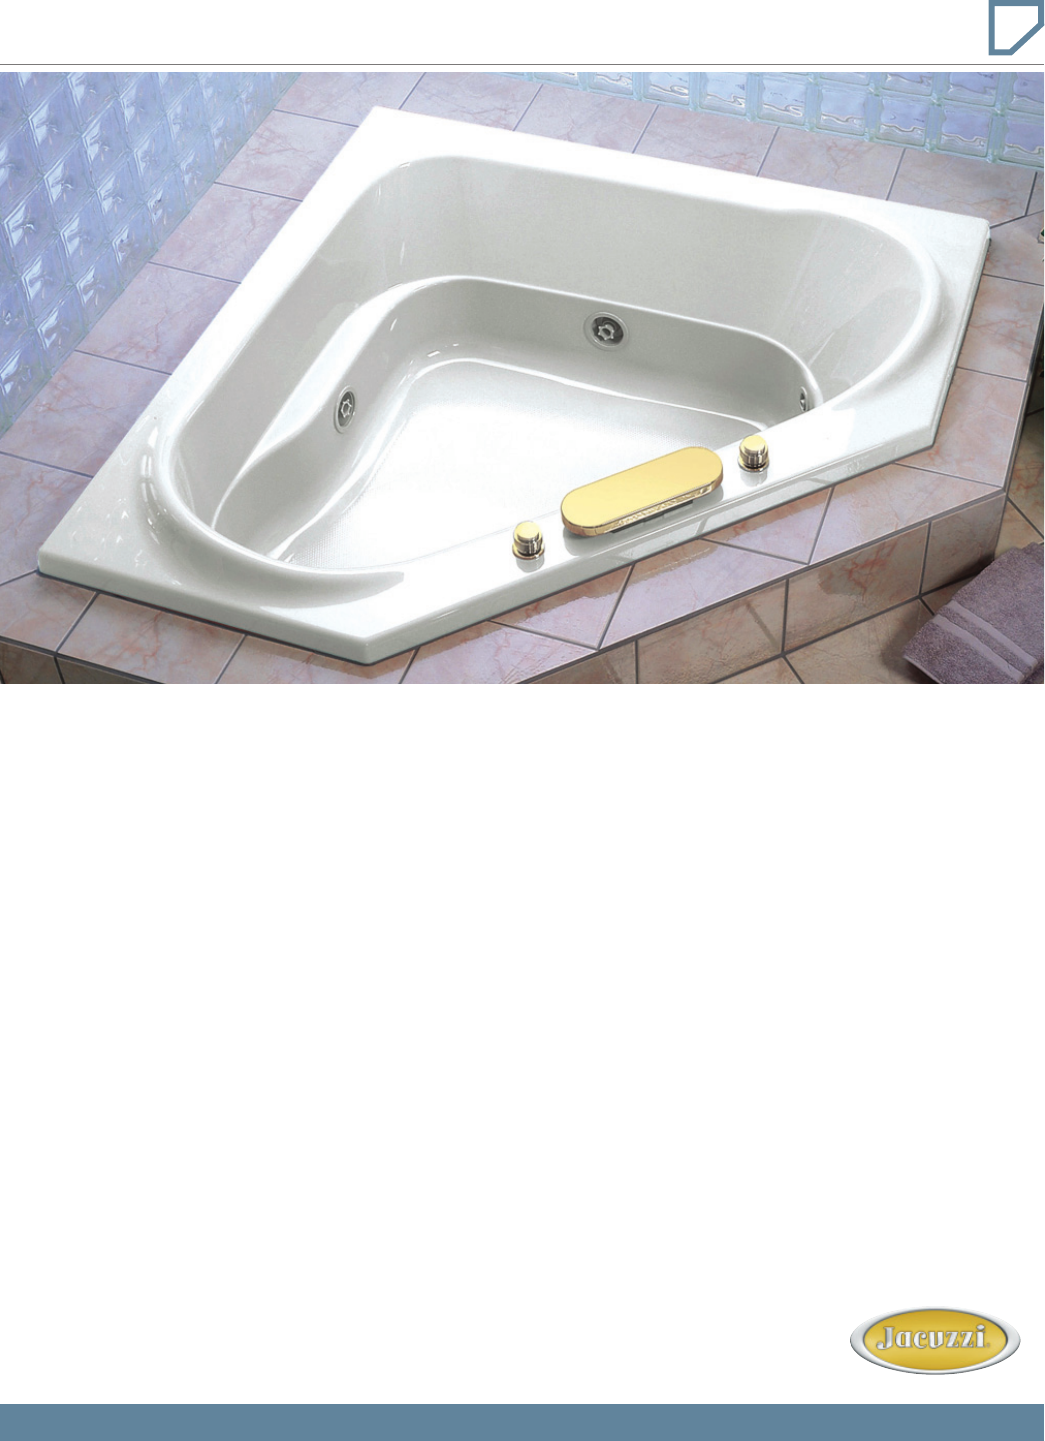 jacuzzi hot tub f934 rh user guide manualsonline com rh lawnandgarden manualsonline com spaform hot tub instruction manual beachcomber hot tub owners manual